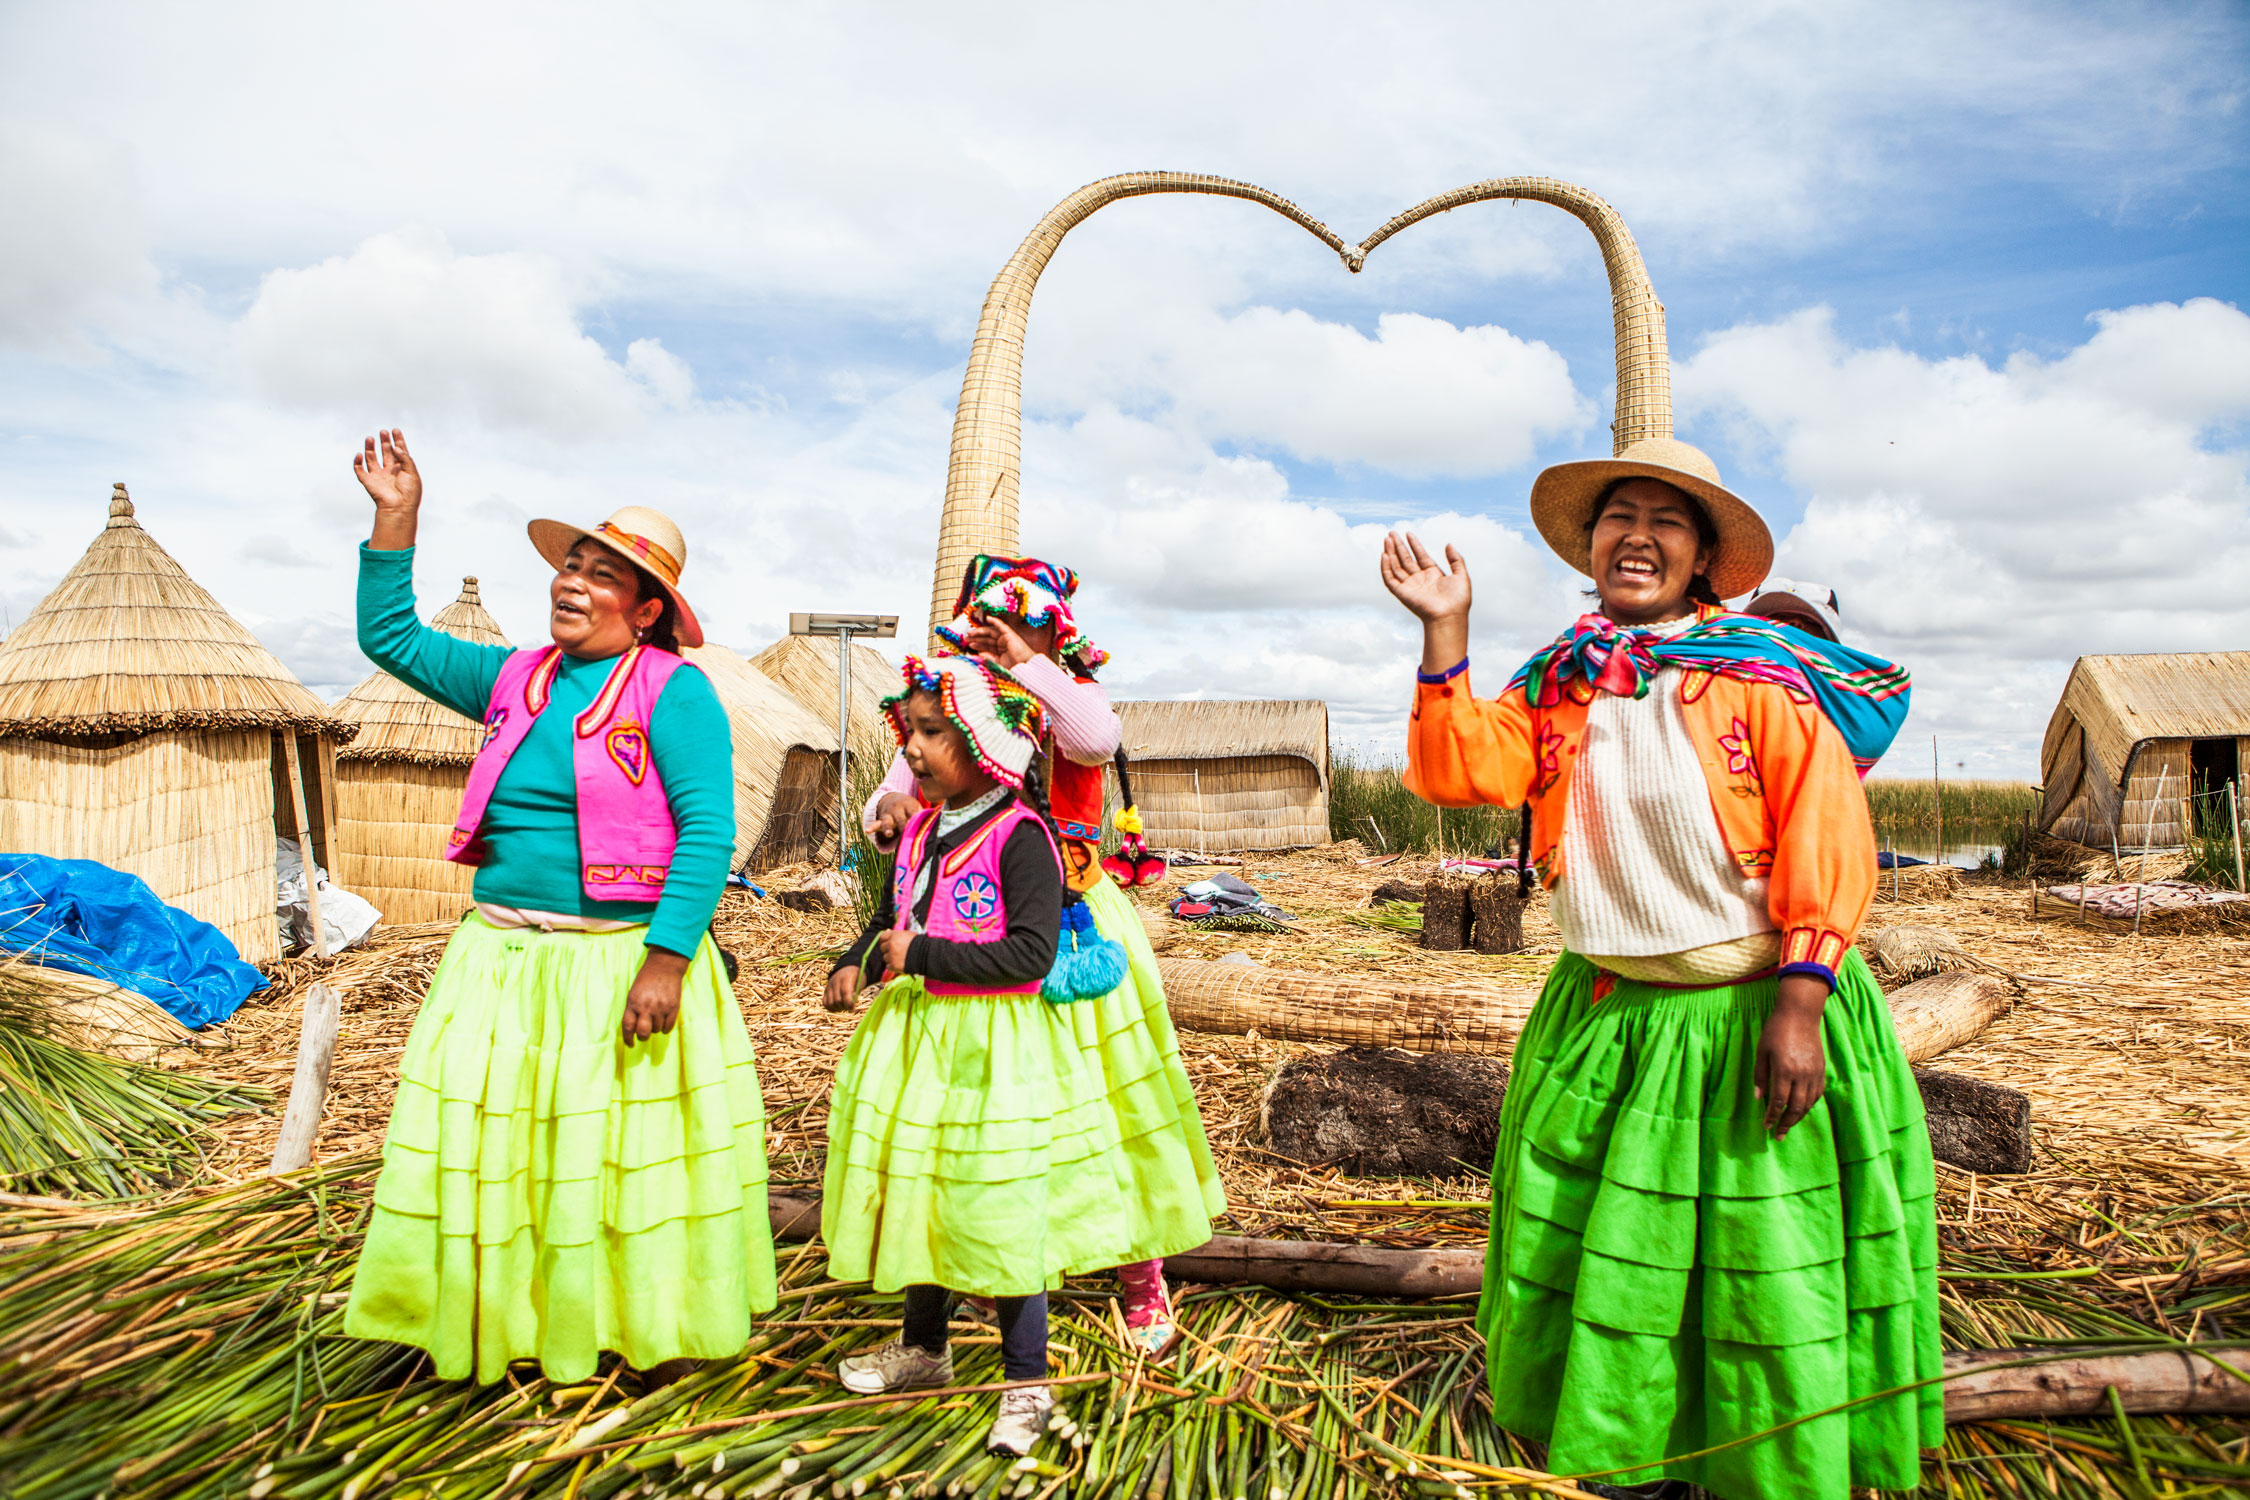 lake-titicaca-puno-peru-wander-south-reed-islands-women.jpg